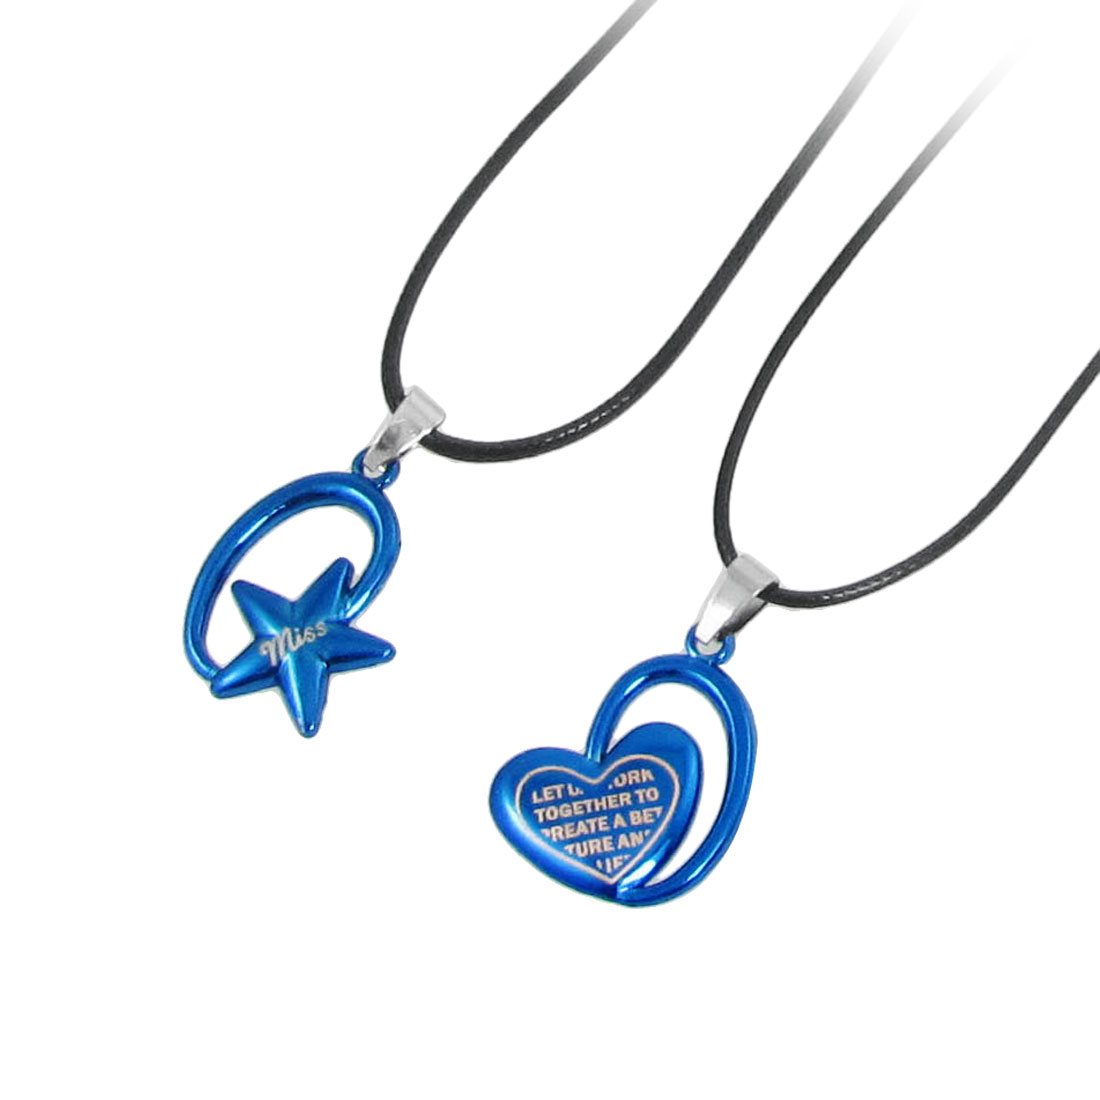 2 Pcs Black Neck Strap Blue Heart Pentagram Shaped Pendants Necklaces for Lovers